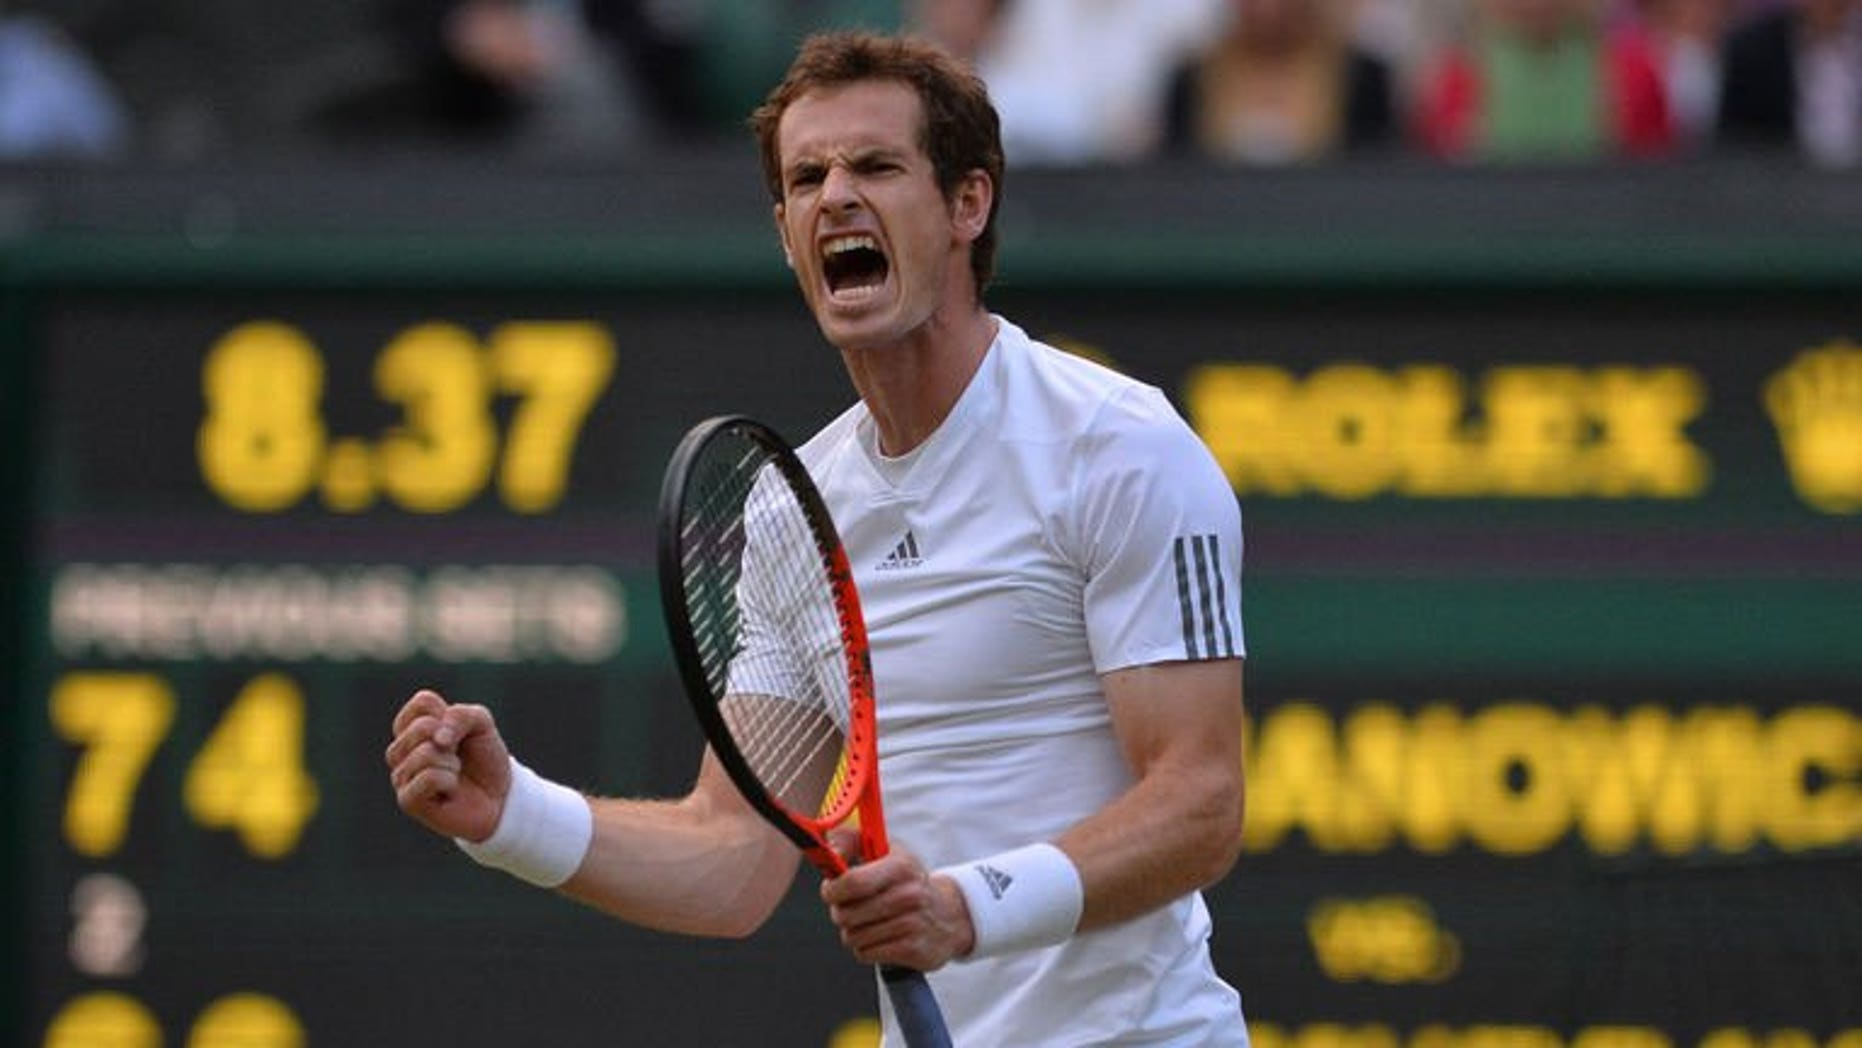 Britain's Andy Murray celebrates winning a point against Poland's Jerzy Janowicz in their men's singles semi-final match at the All England Club in Wimbledon, southwest London, on July 5, 2013. Murray took a two sets to one lead in his Wimbledon semi-final against Janowicz on Friday when he took the third set, 6-4.